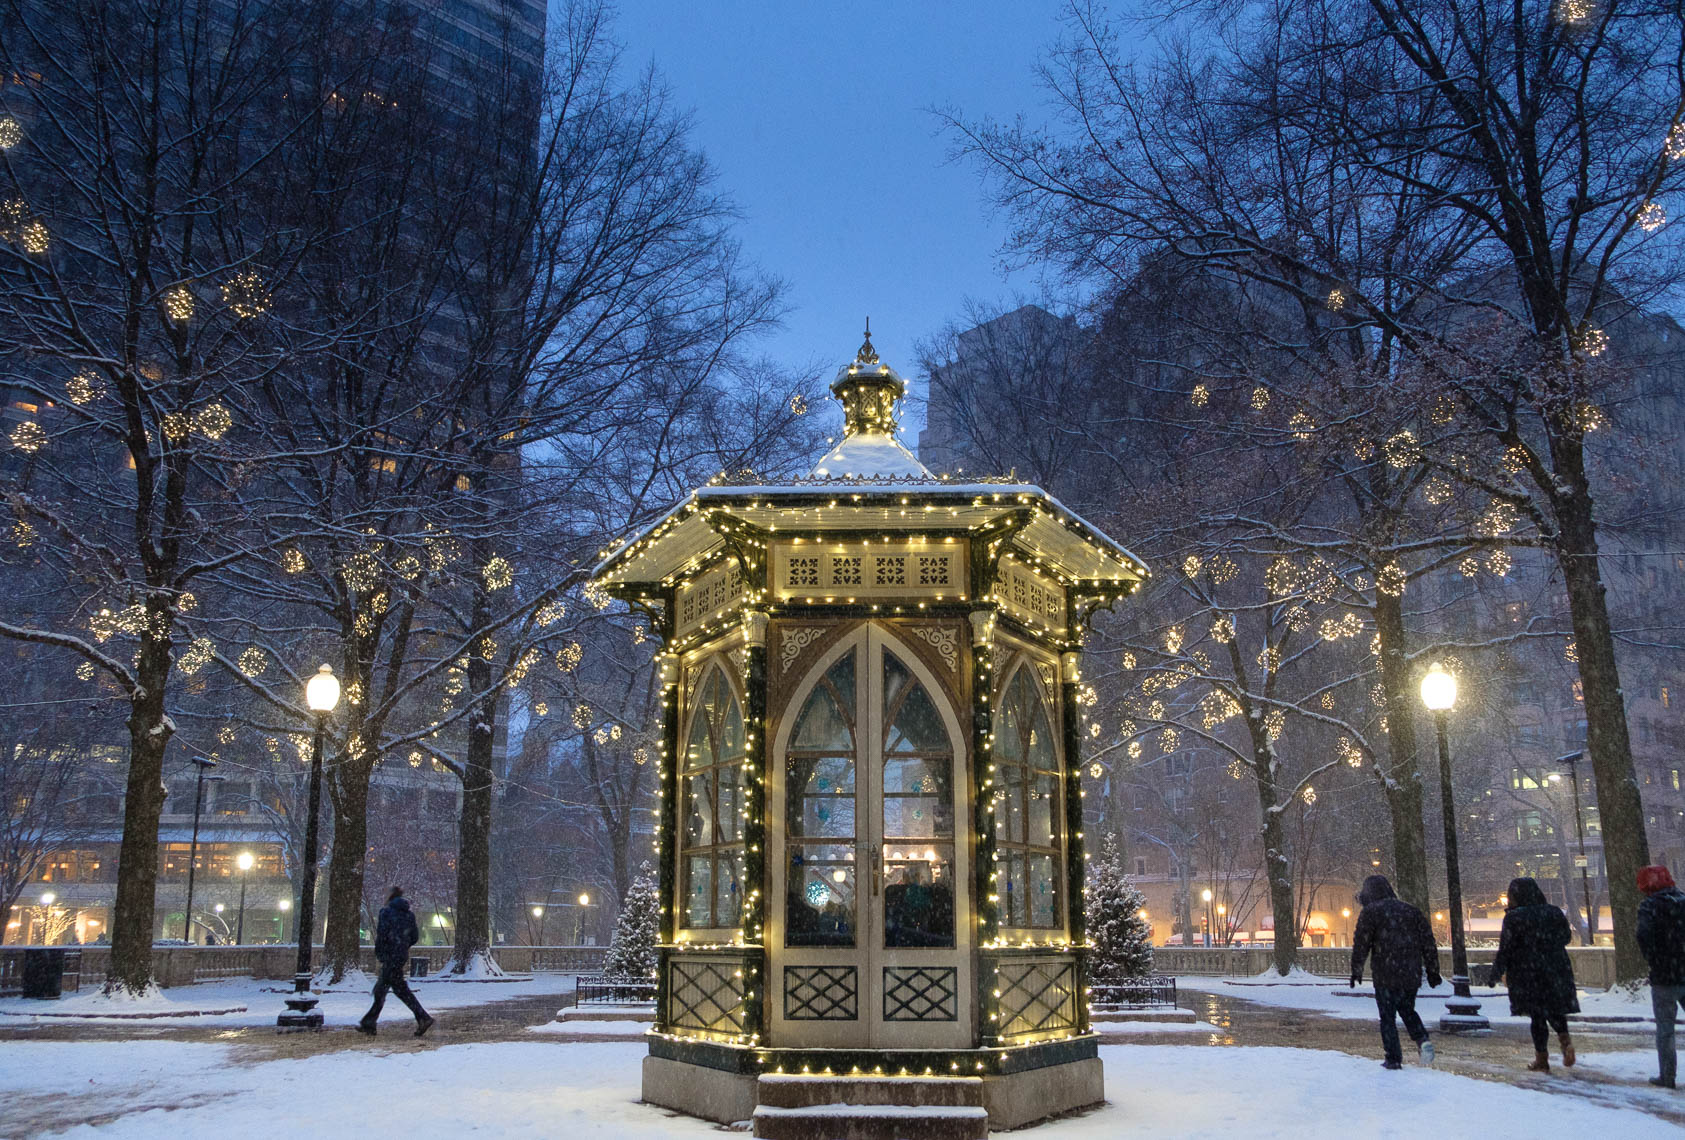 Winter in Rittenhouse Square